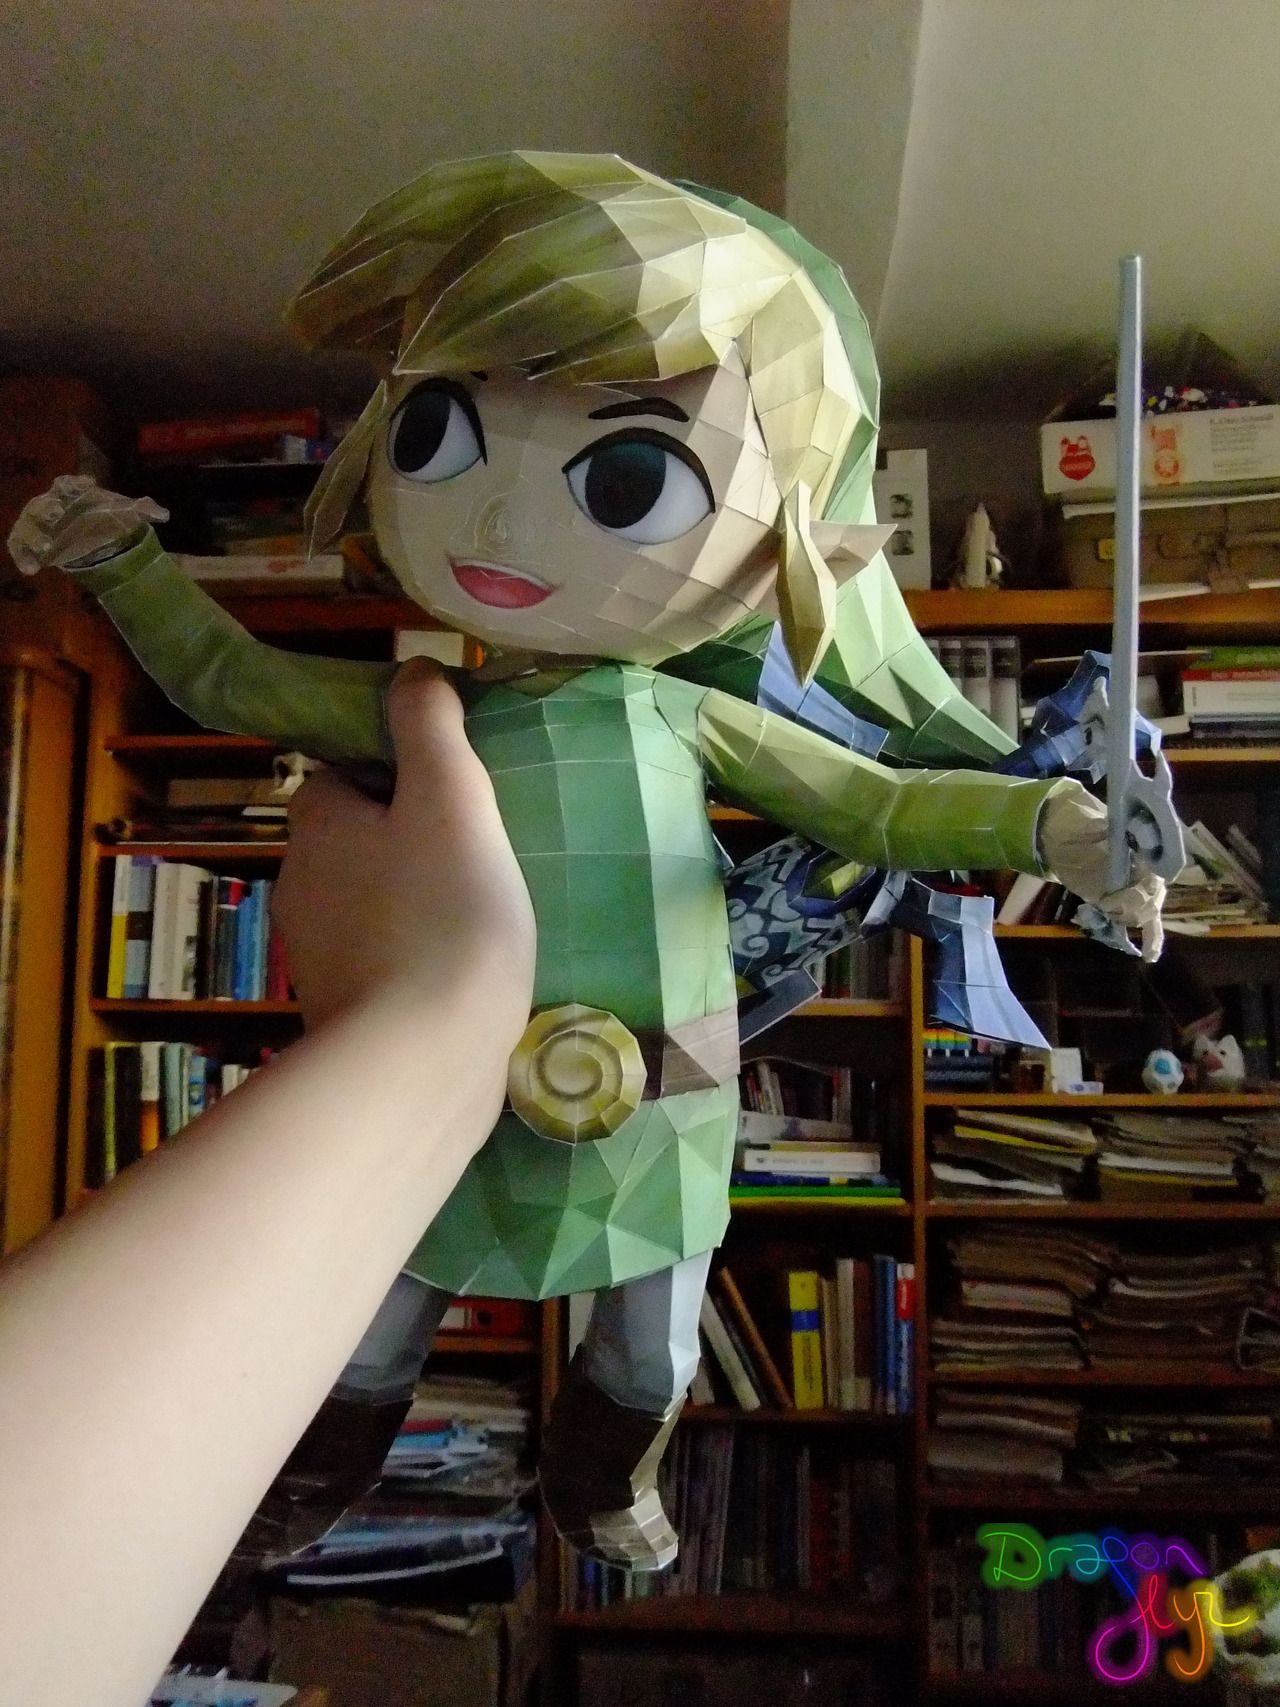 Link wind waker papercraftget the link for the download at the